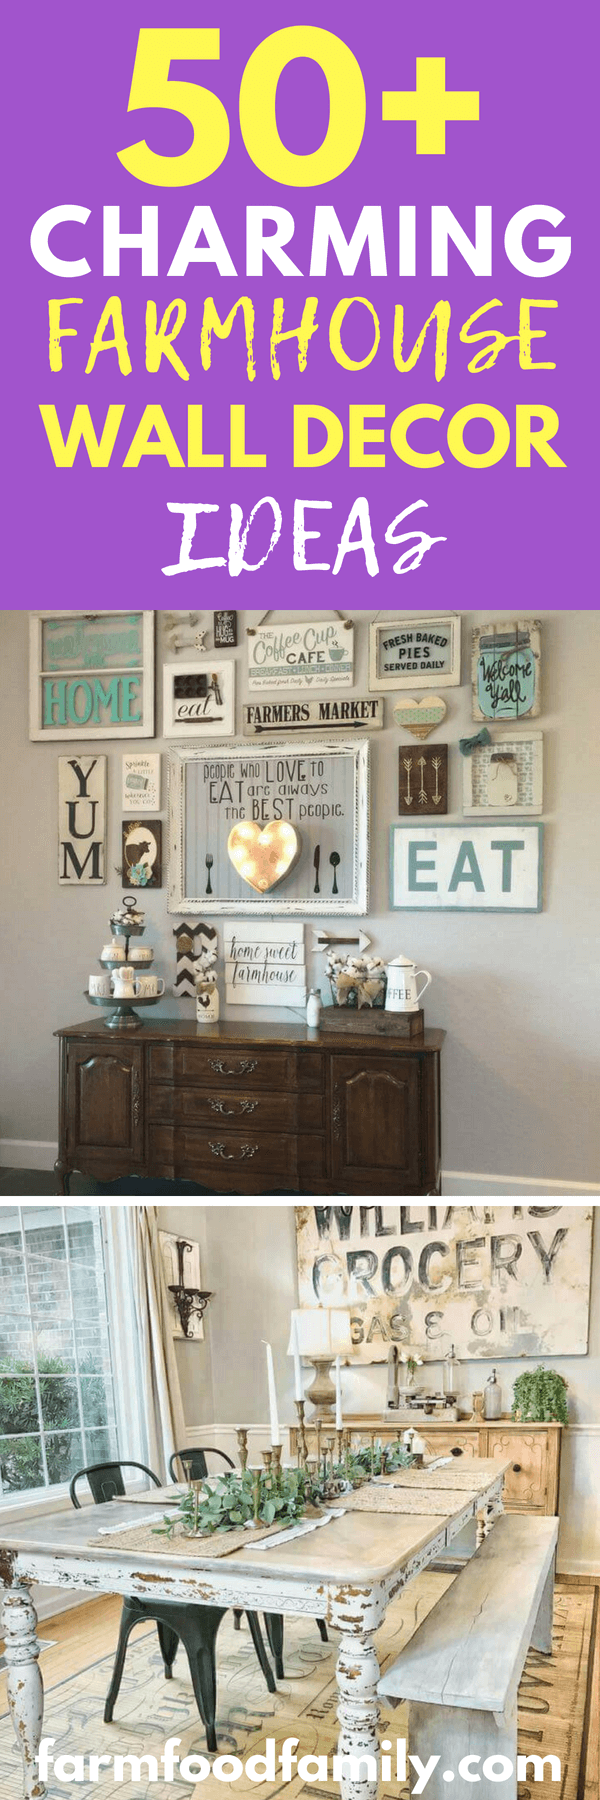 New rustic sign designs and unexpected ways to use mason jars? Check and check. Whether you're looking to add a single piece to an existing interior or want tomake over an entire wall, the following list is sure to have a stylish suggestion.